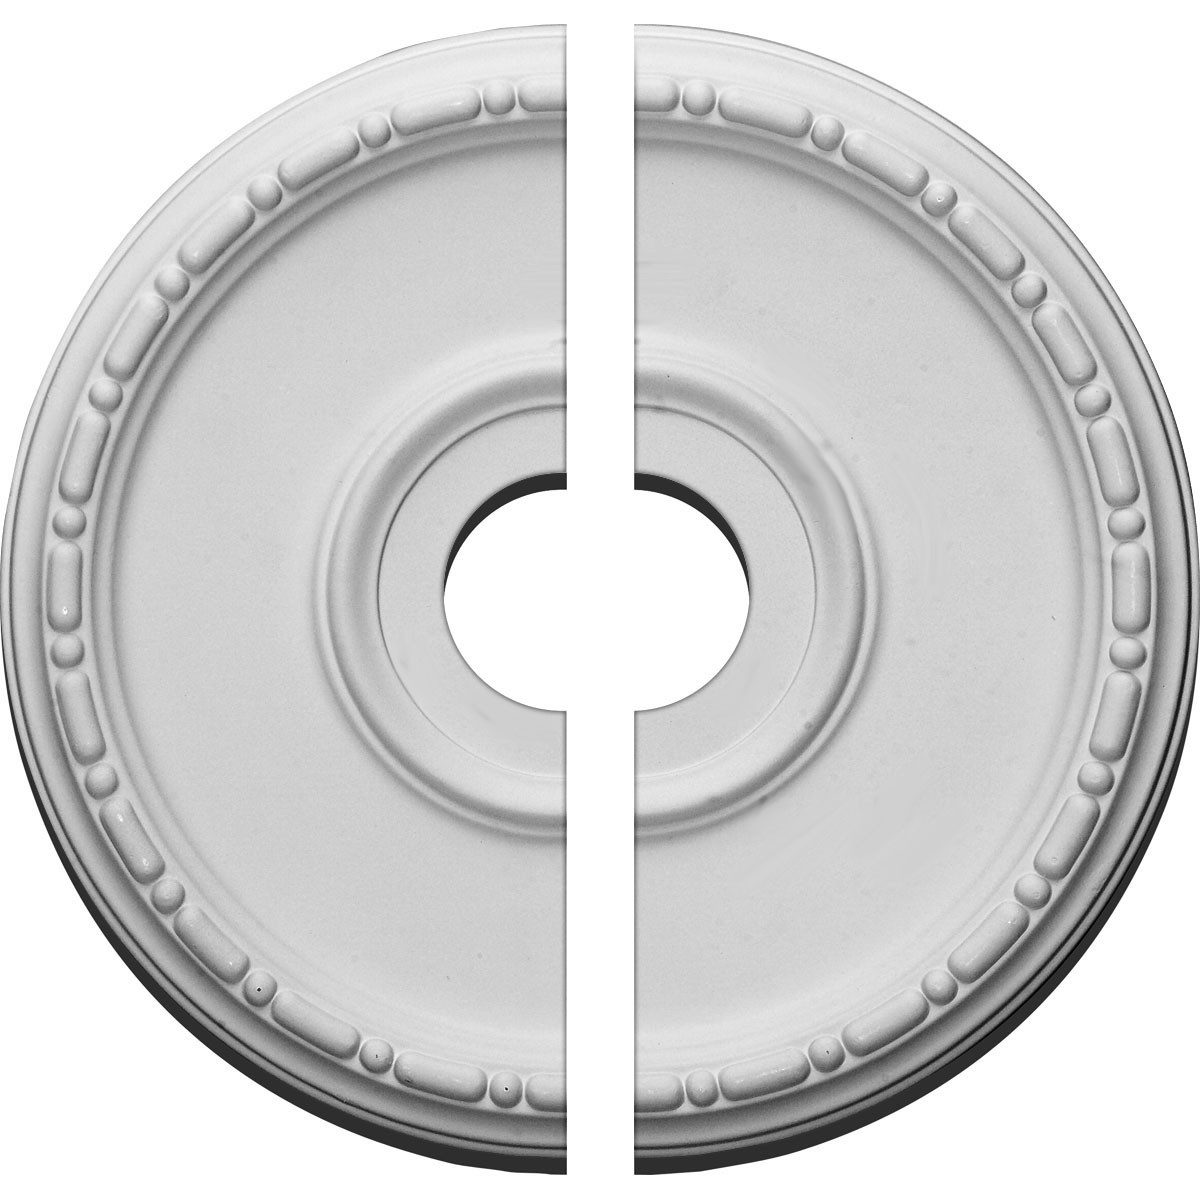 "EM-CM16MD2-03500 - 16 1/2""OD x 3 1/2""ID x 1 1/2""P Medea Ceiling Medallion, Two Piece (Fits Canopies up to 5 1/2"")"